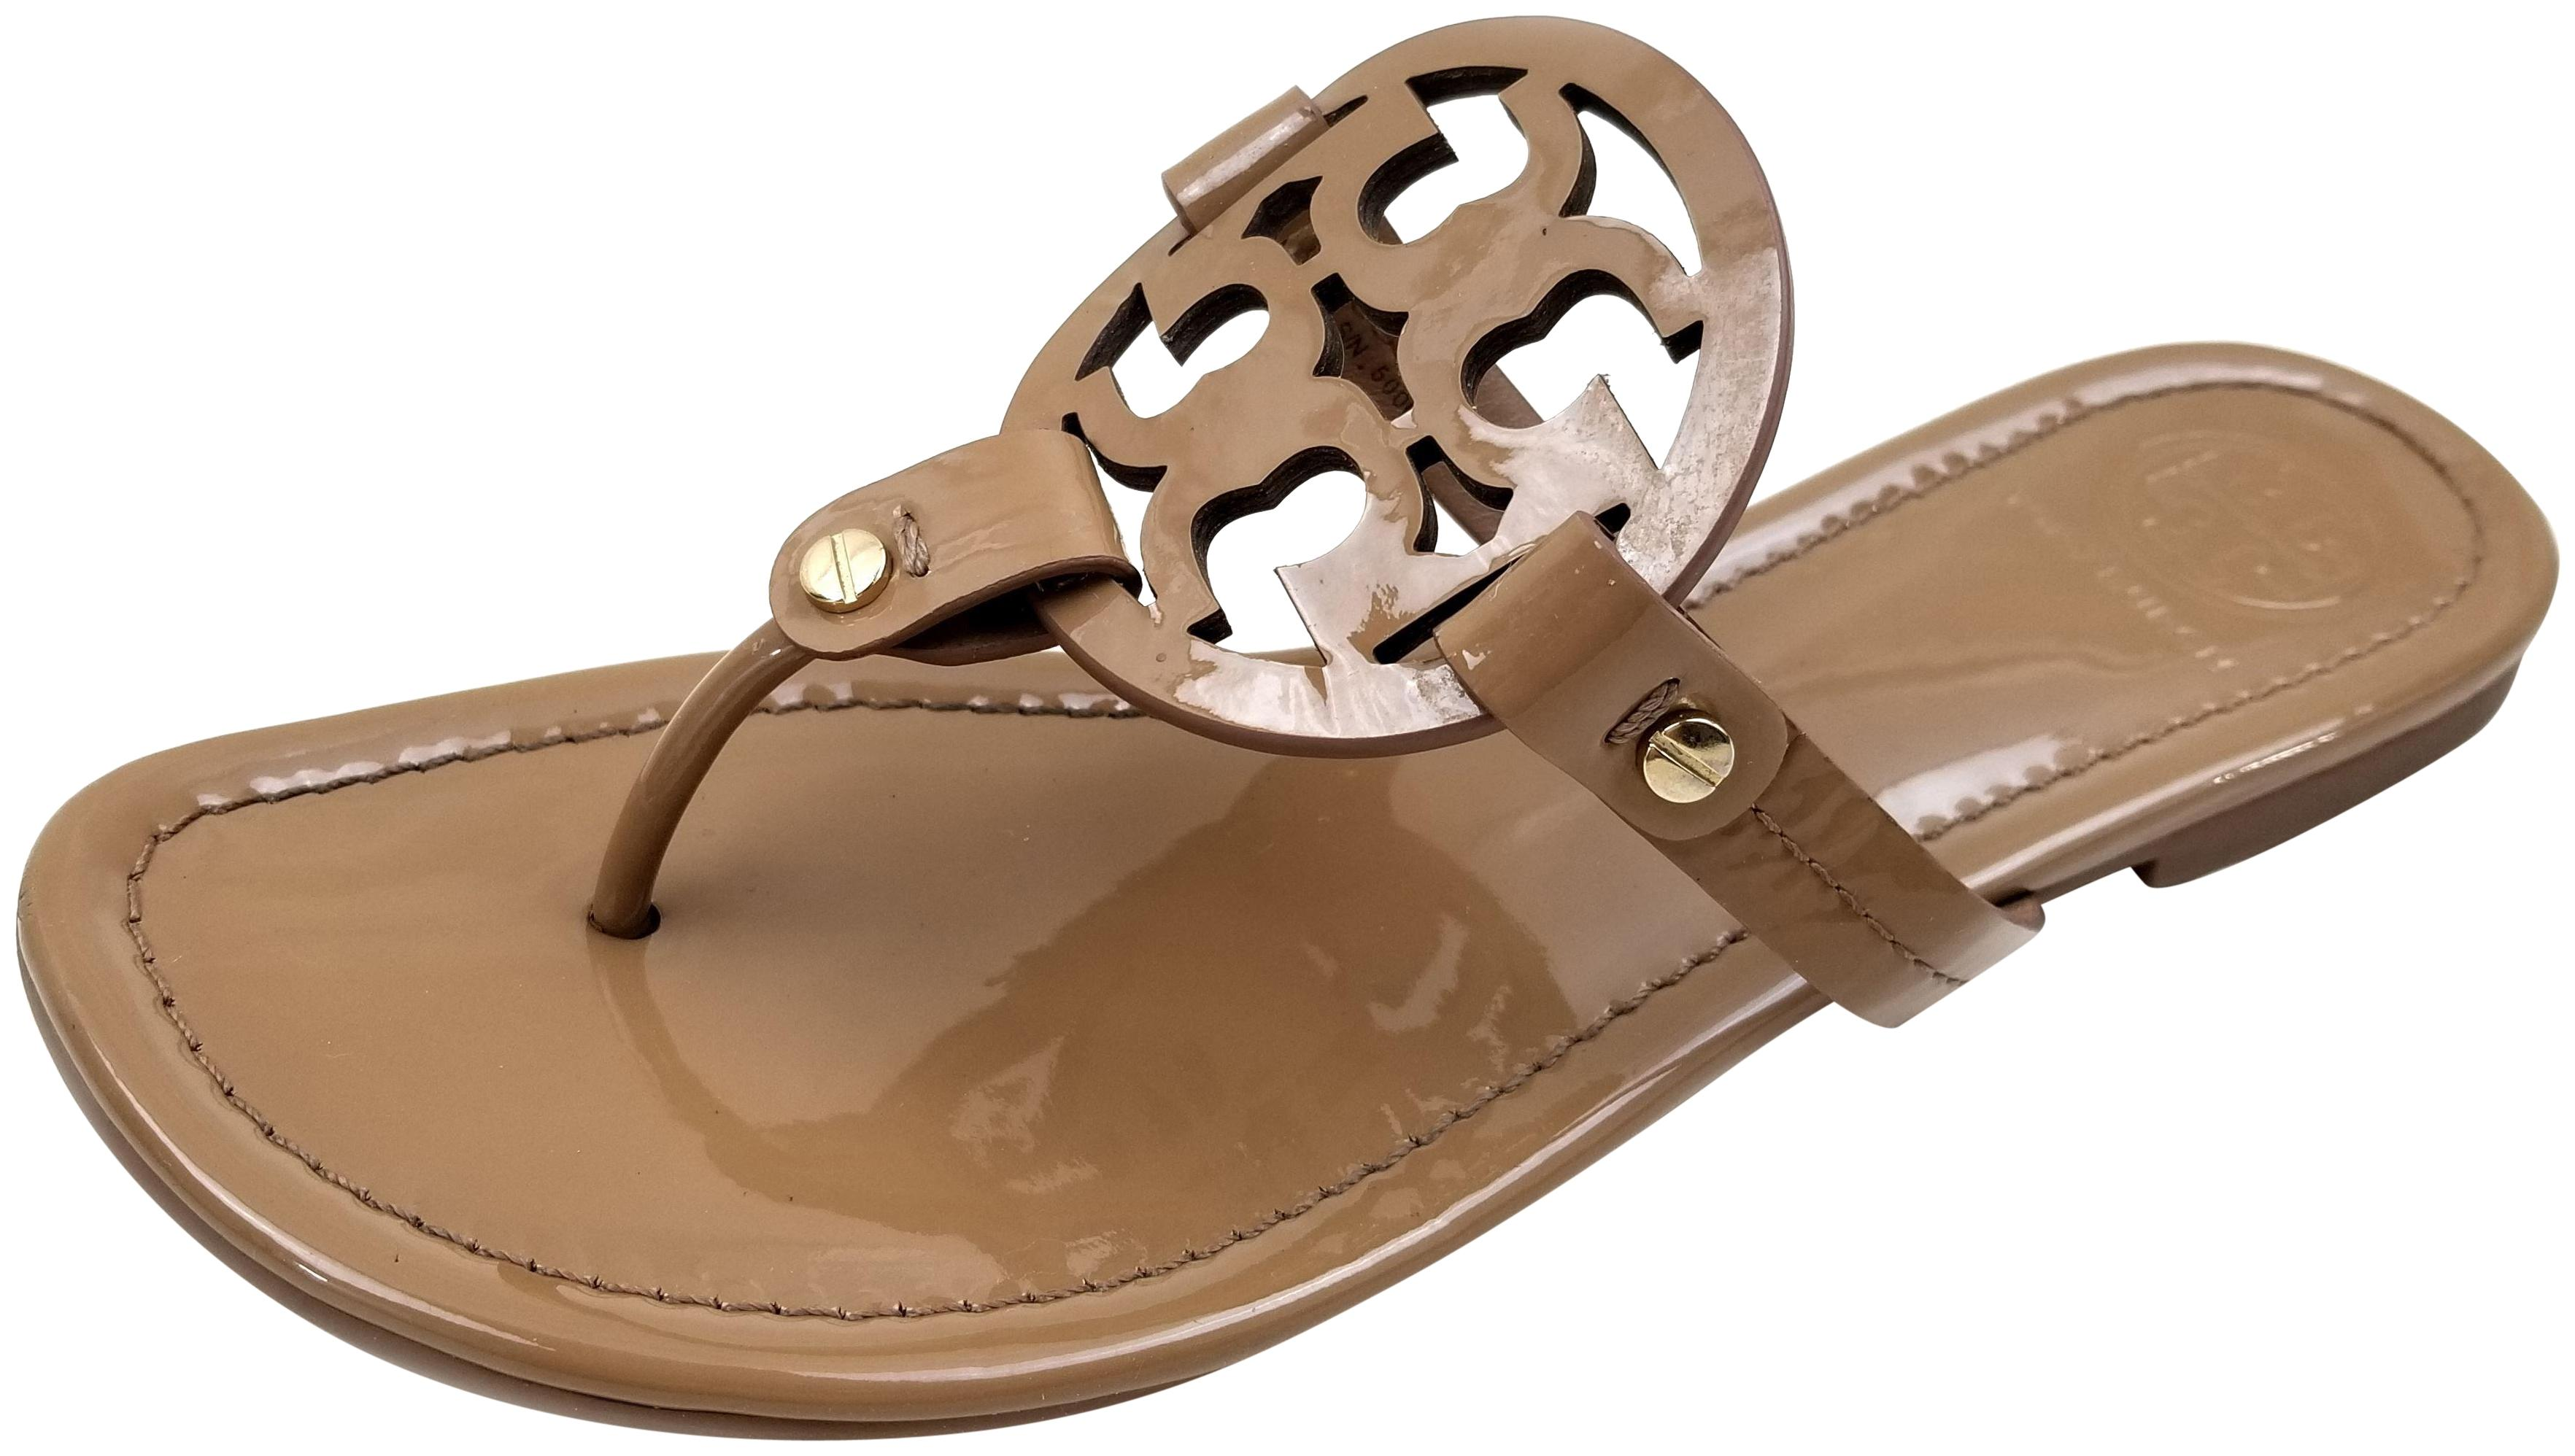 Tory Burch Sand Patent Miller Sandals Size US 5 Regular (M, B)